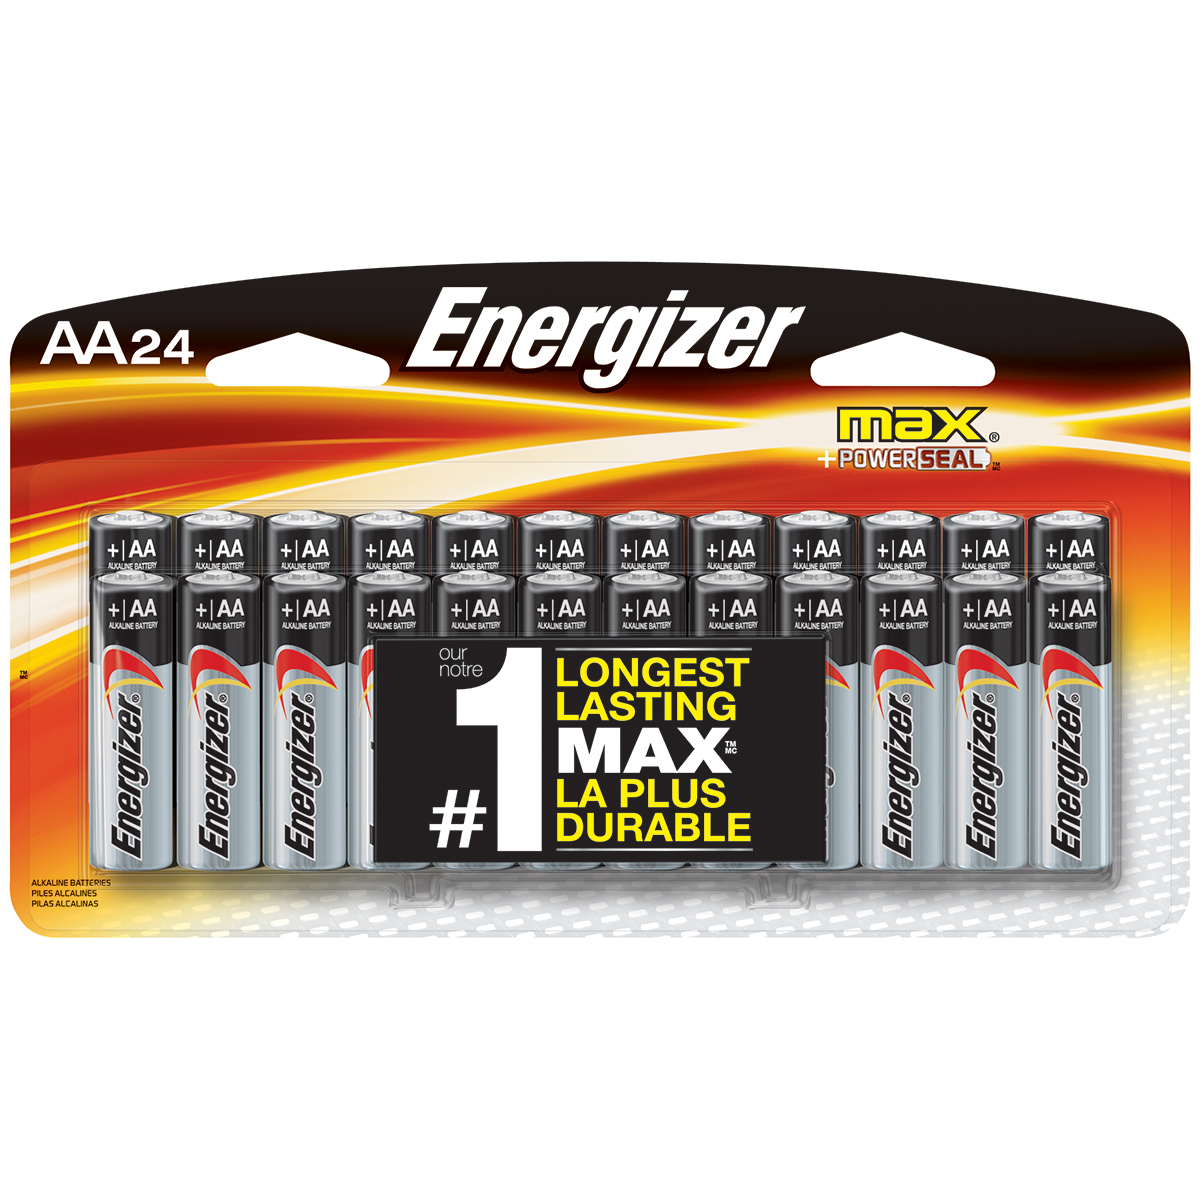 Energizer MAX Alkaline, AA Batteries, 24 Pack